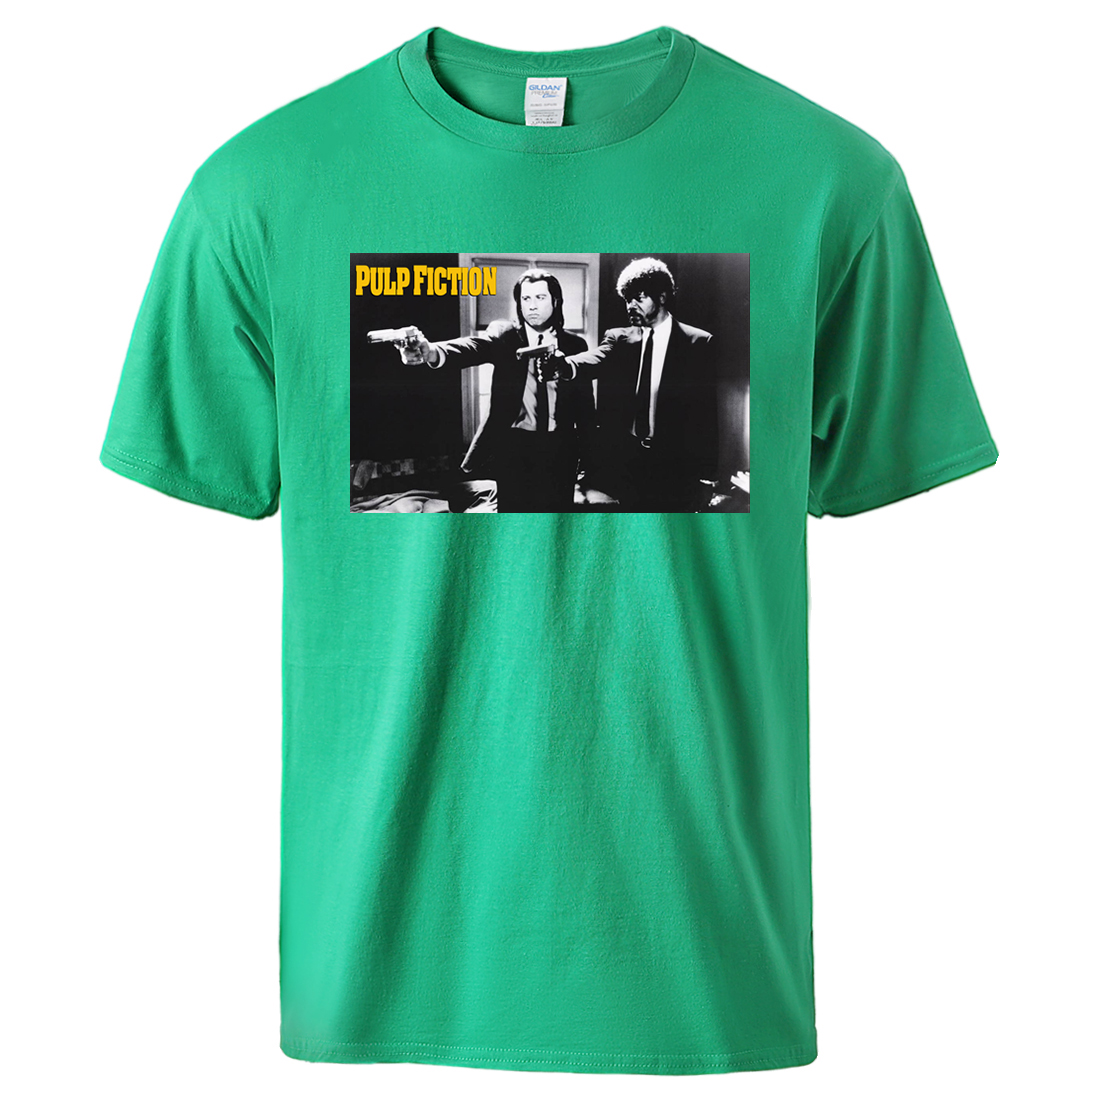 2020 Pulp Fiction Retro T Shirts Summer Casual Cotton Sportswear Male High Quality Short Sleeve Tee Tshirts Fashion Cool Tops